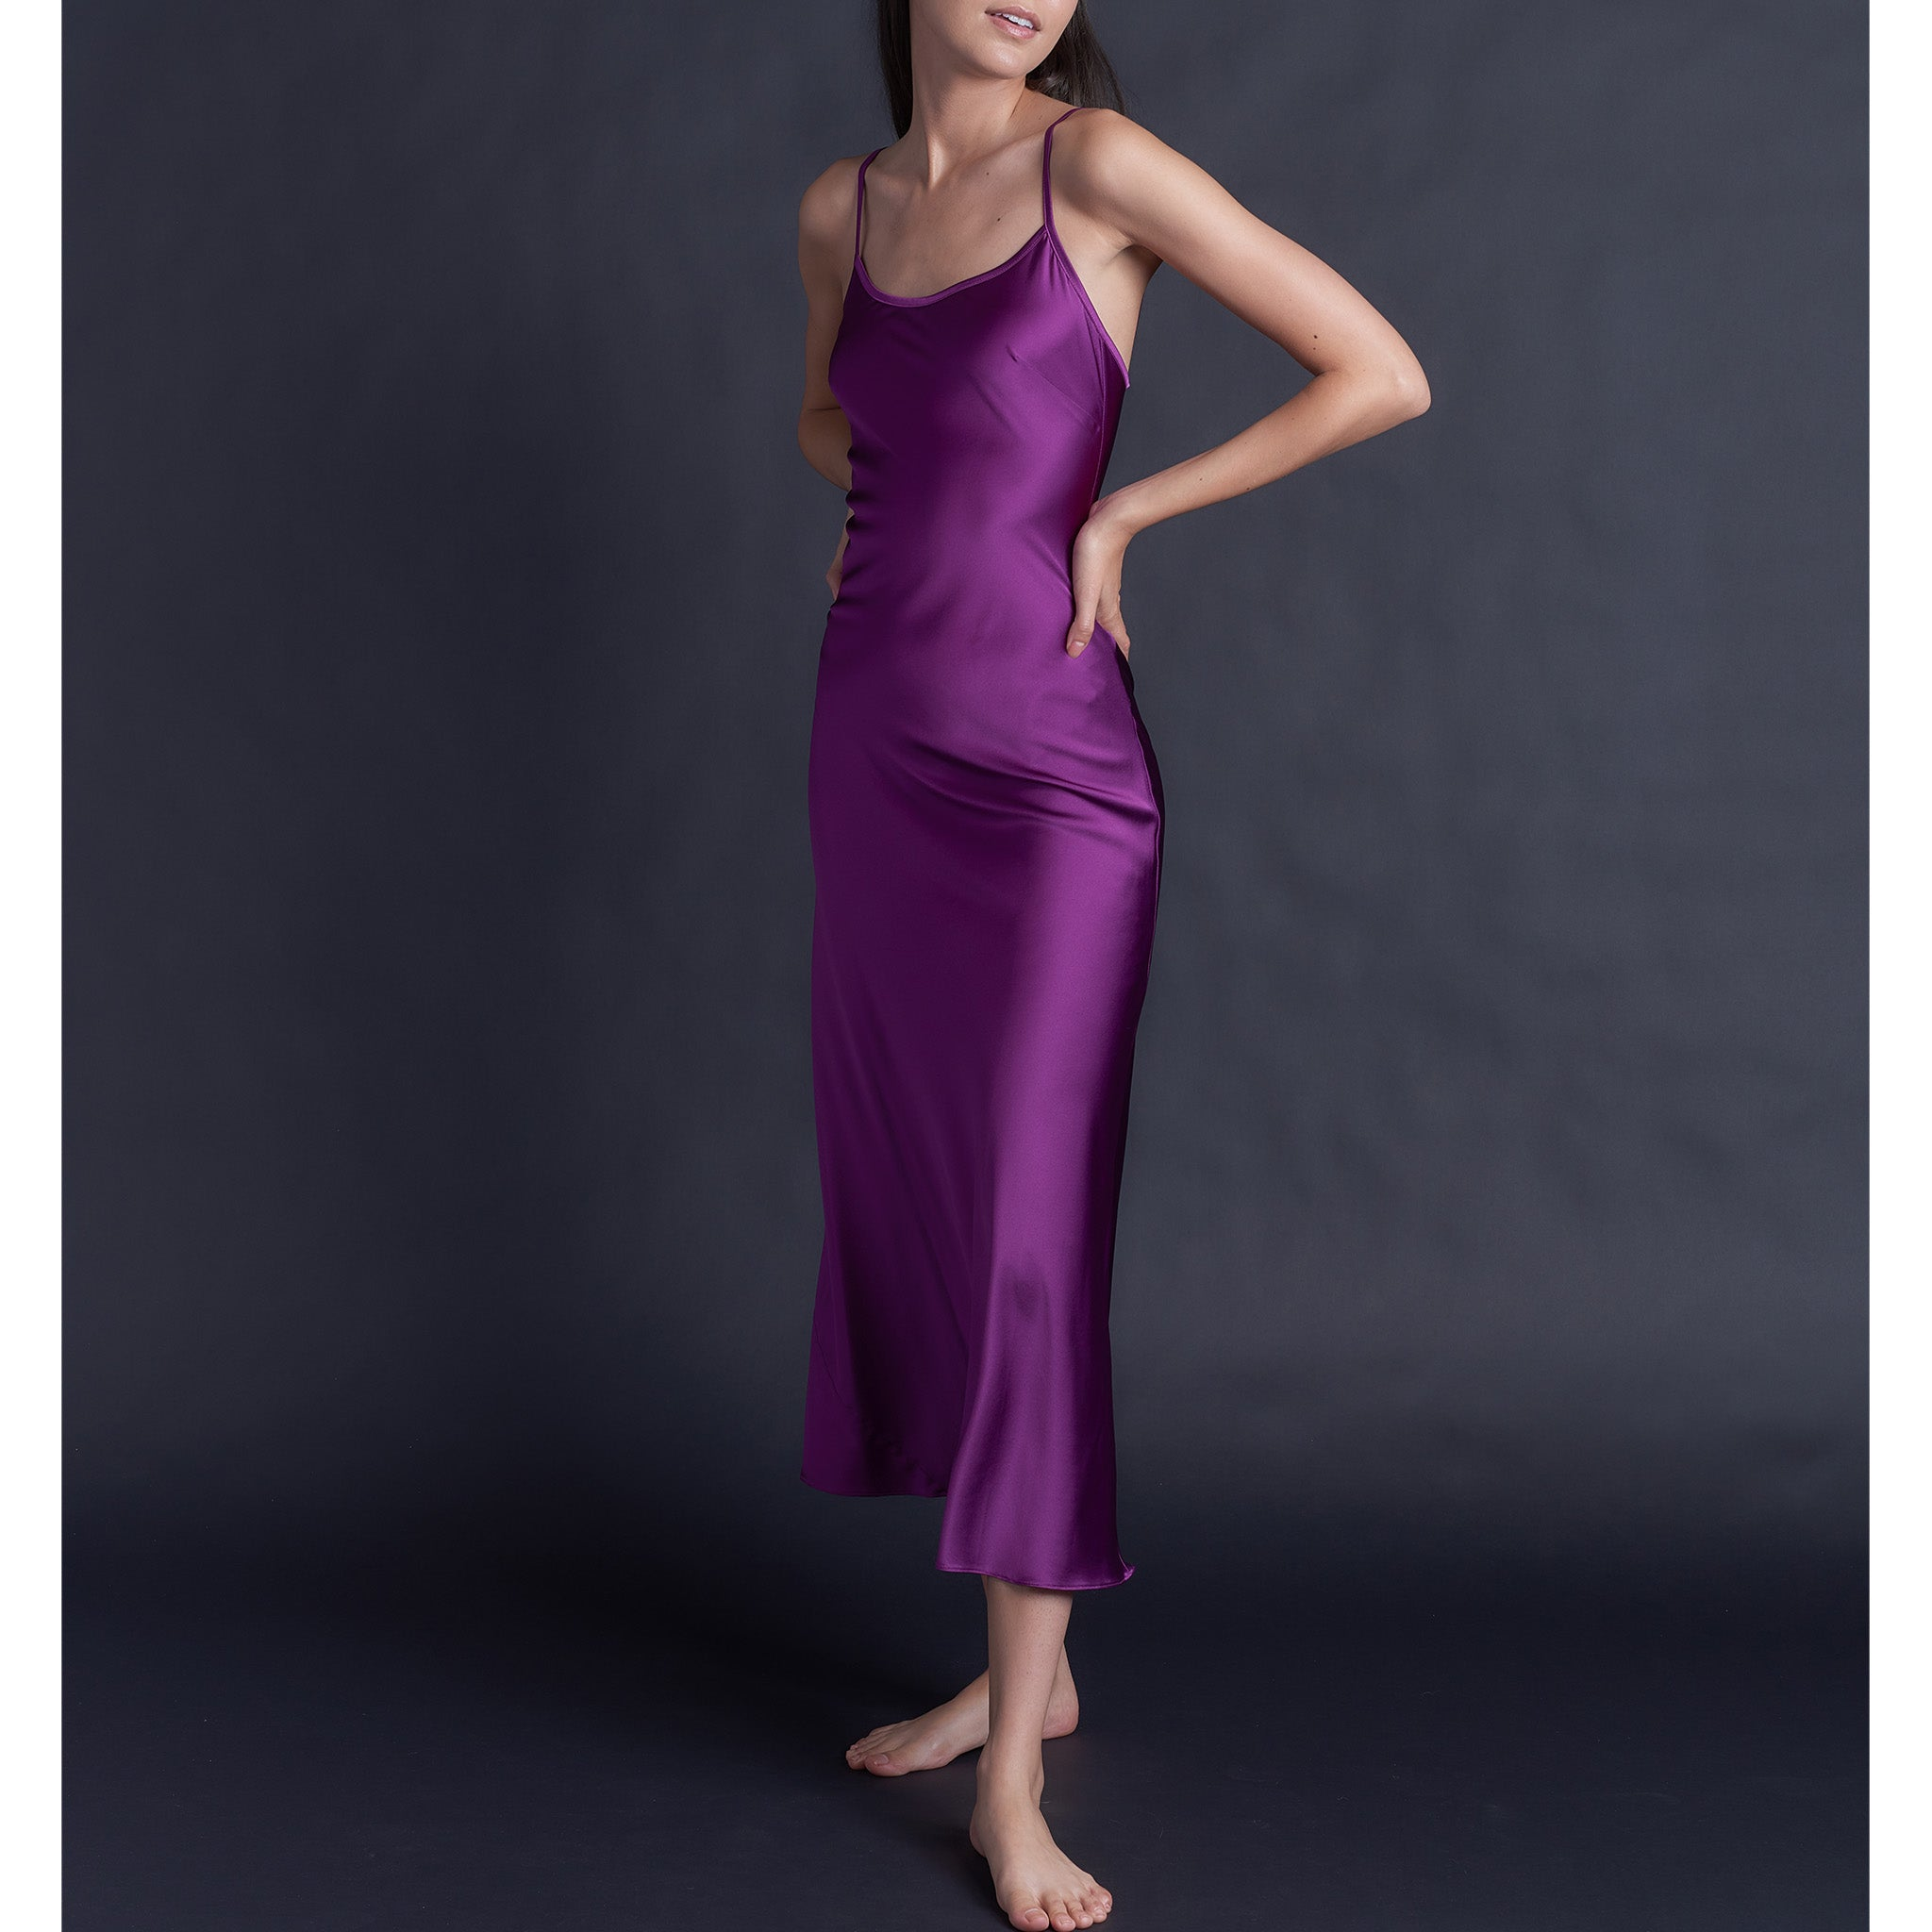 Juno Slip in Pink Tourmaline Stretch Silk Charmeuse